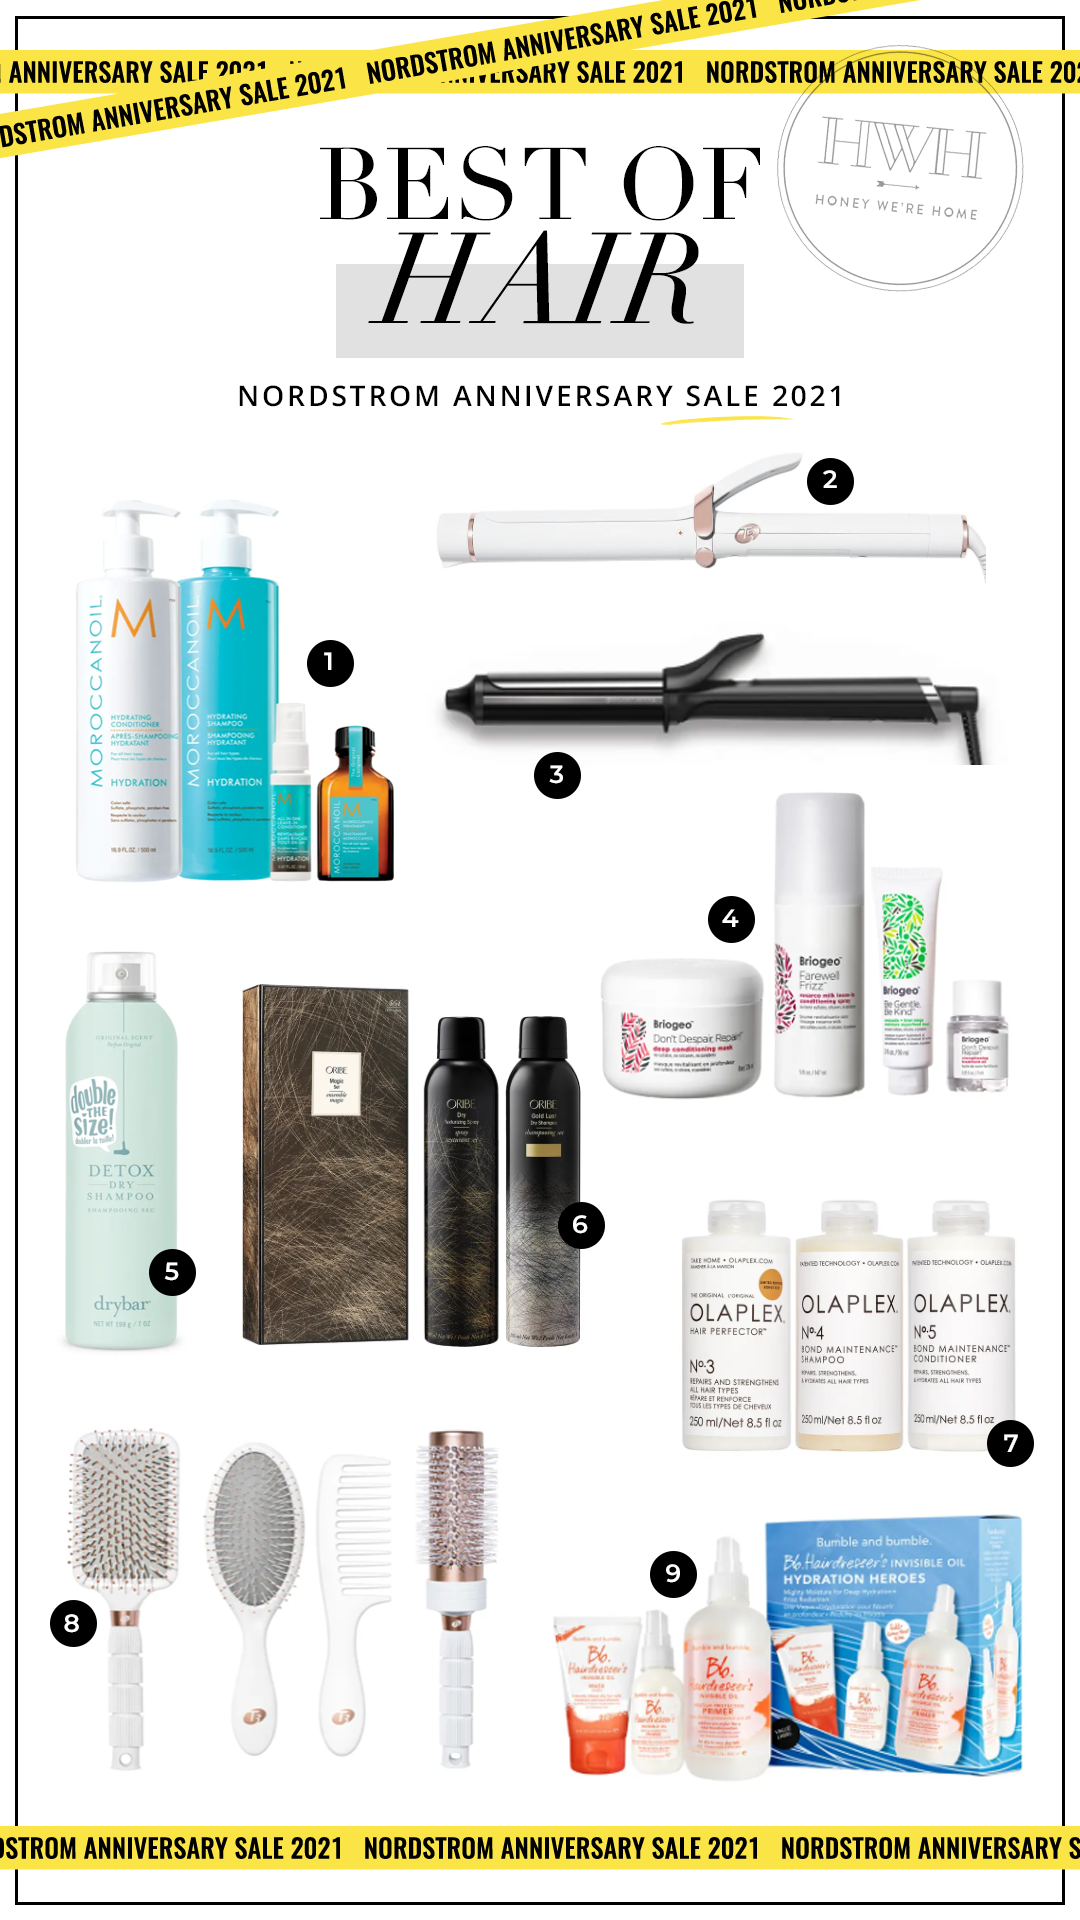 Nordstrom Anniversary Sale | Best of Hair, Beauty, Home & Gifts